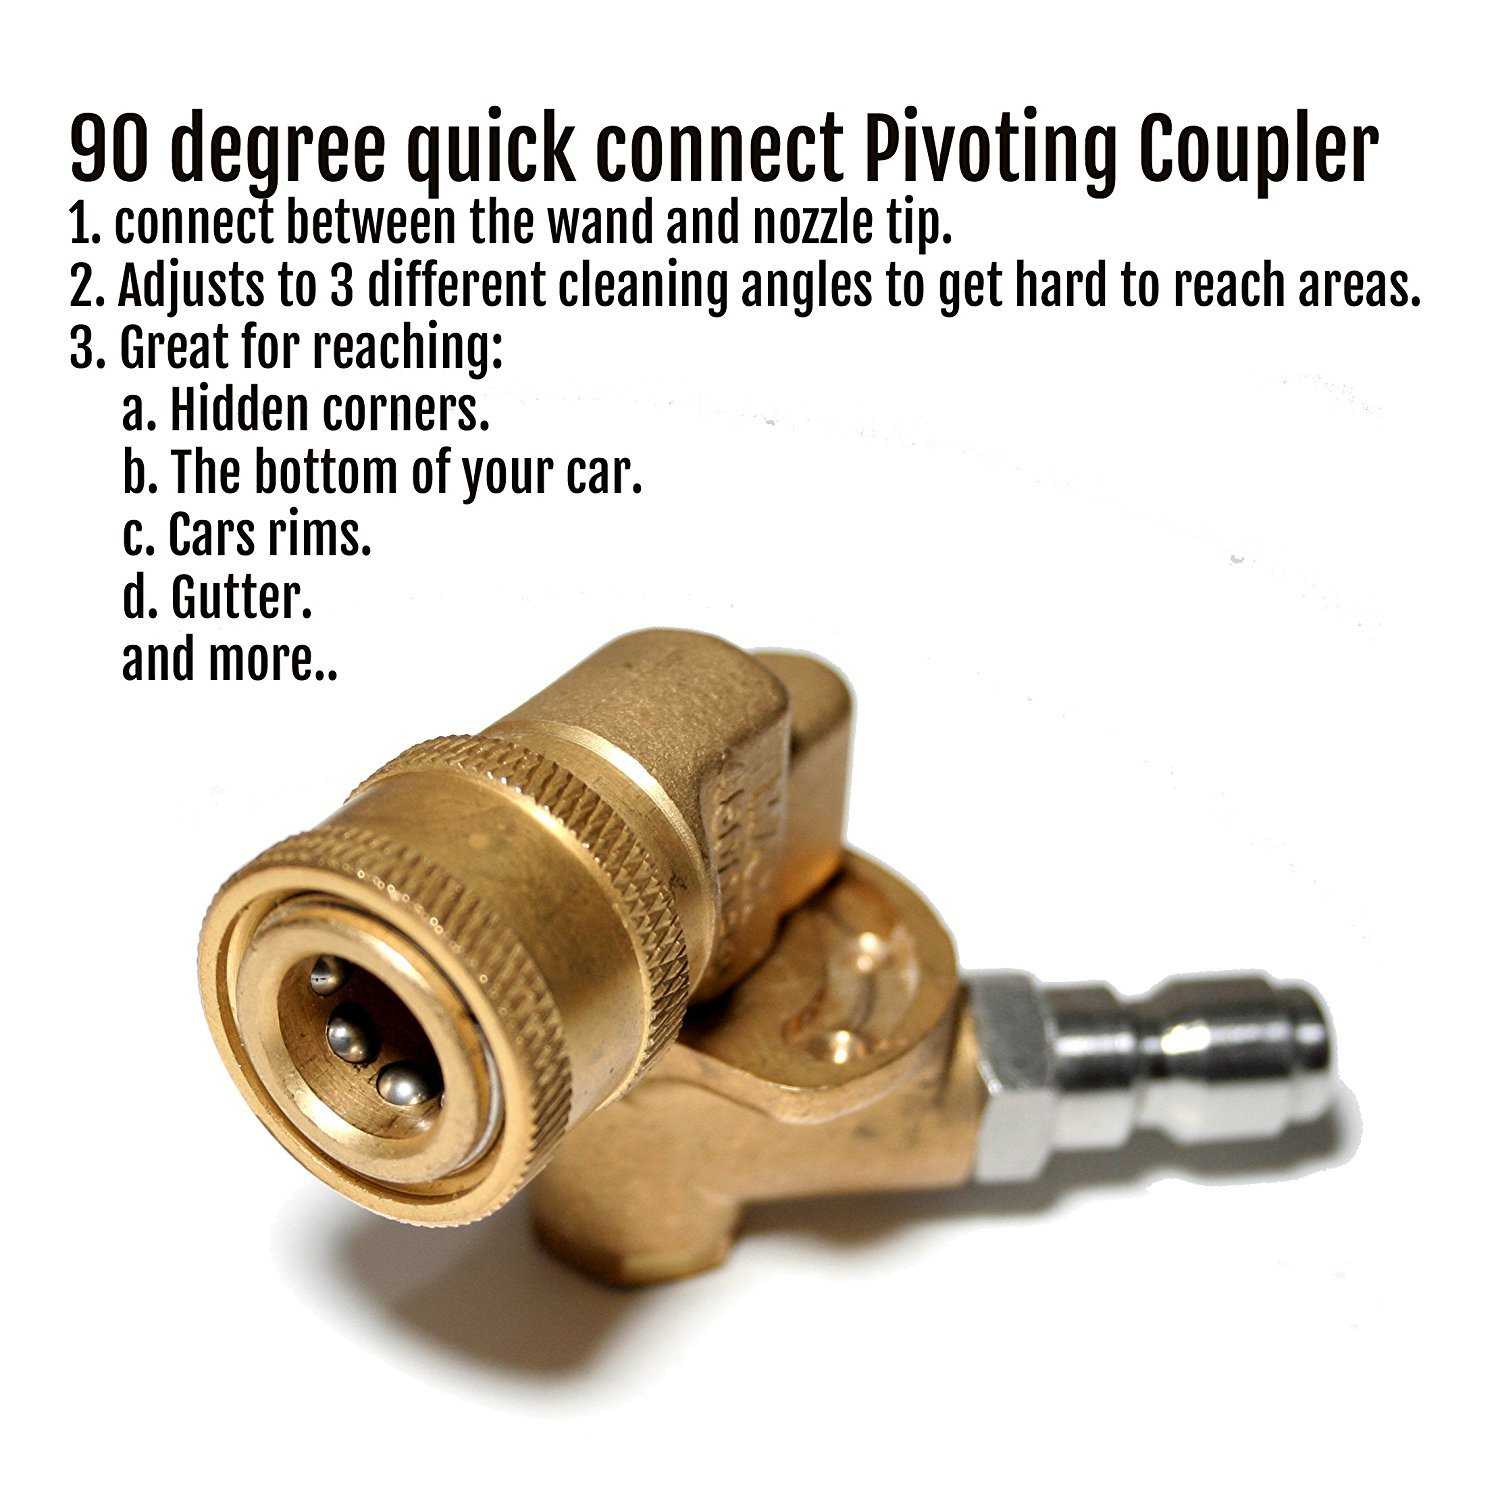 """Quick Connecting Pivoting Coupler Adapter for Pressure Washer Nozzles, Cleaning Hard to Reach Areas, 1/4"""" Plug, 4500 PSI 90 Degree"""